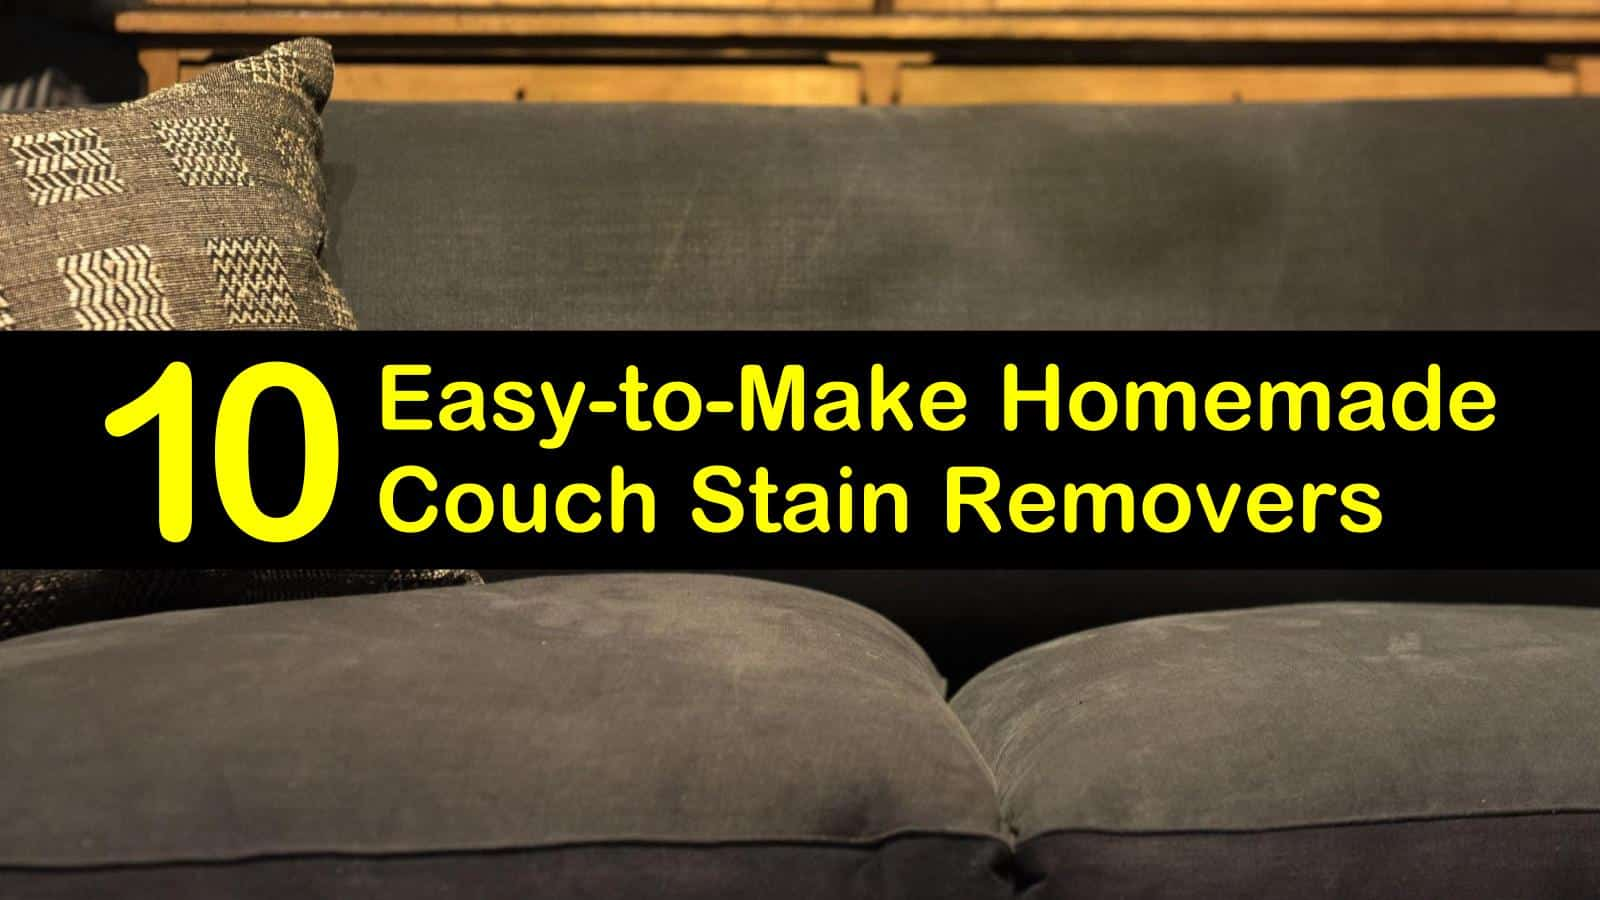 homemade couch stain remover titleimg1